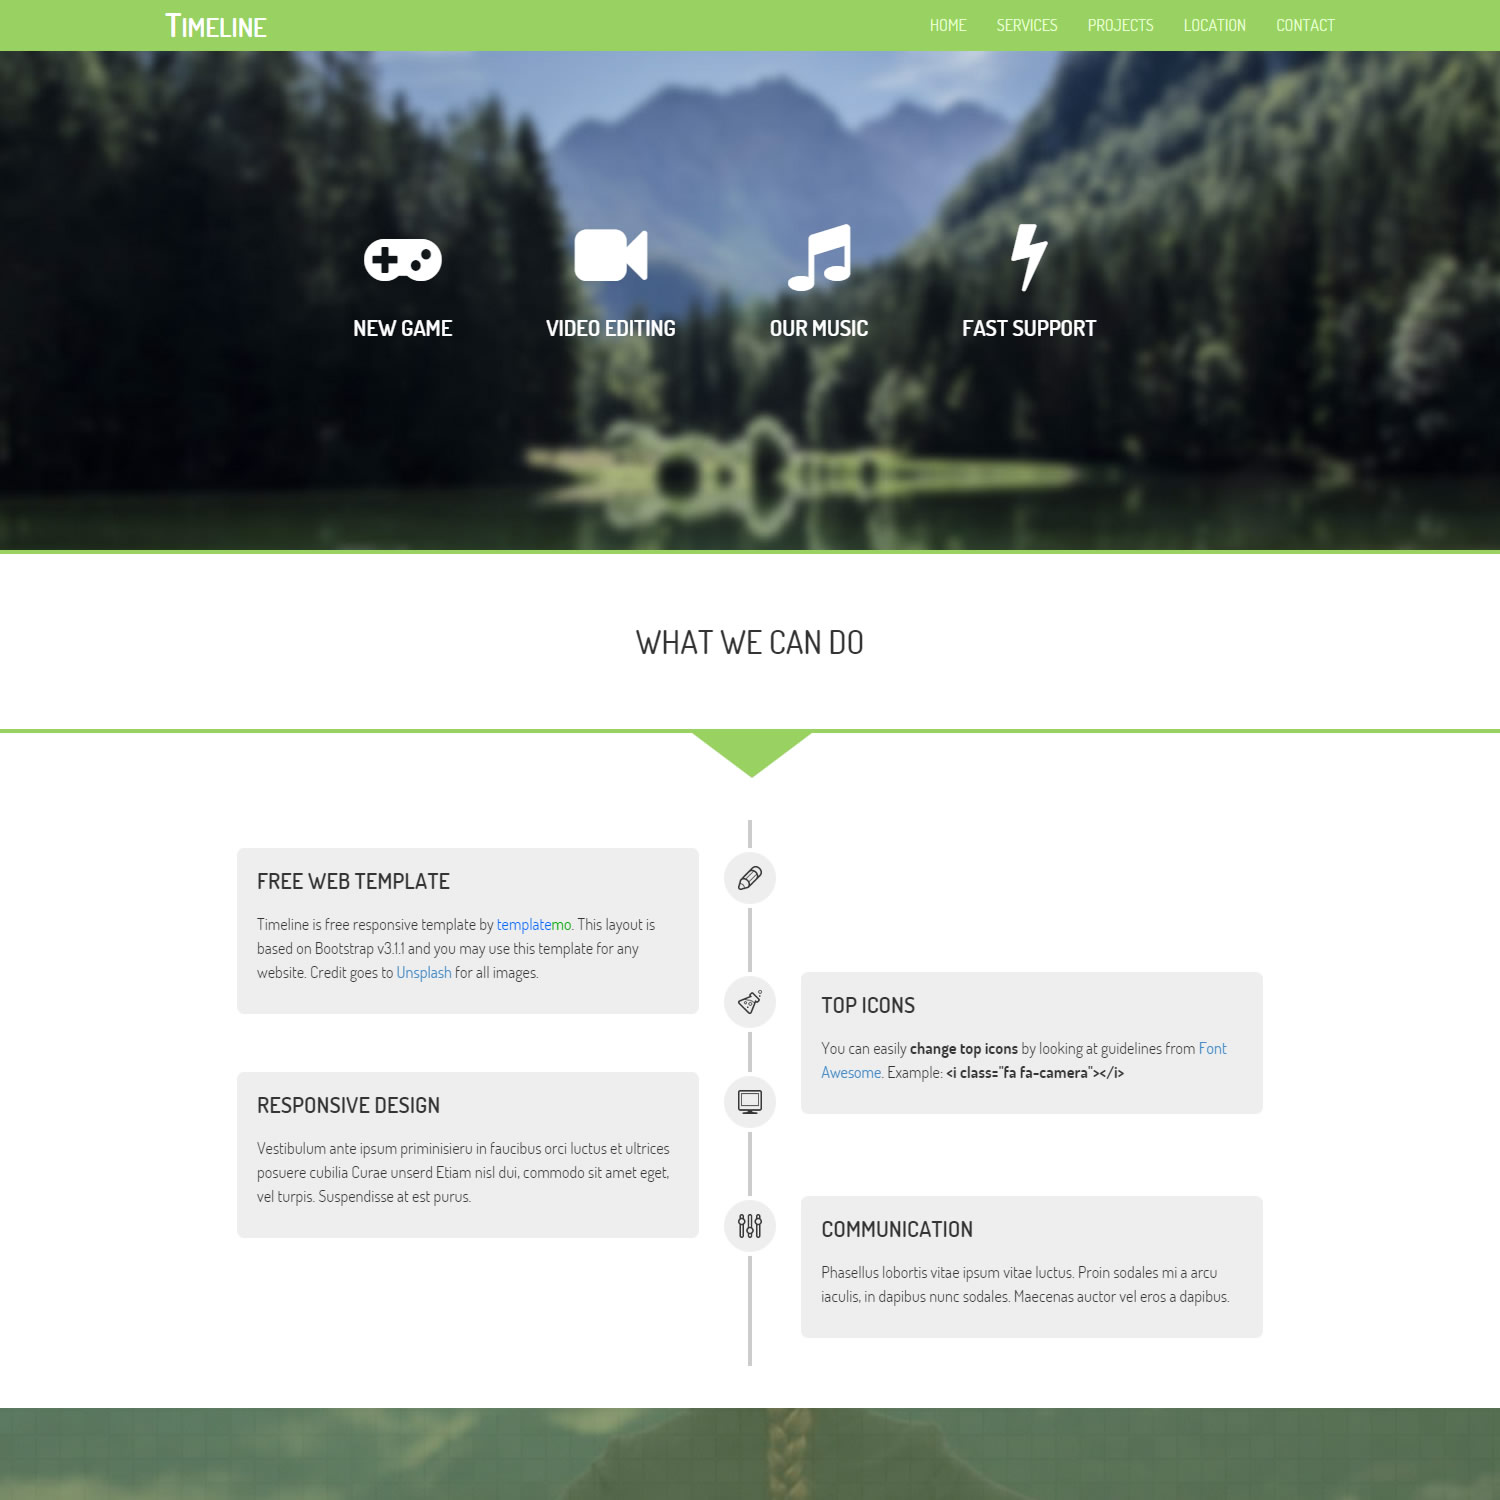 timeline website templates